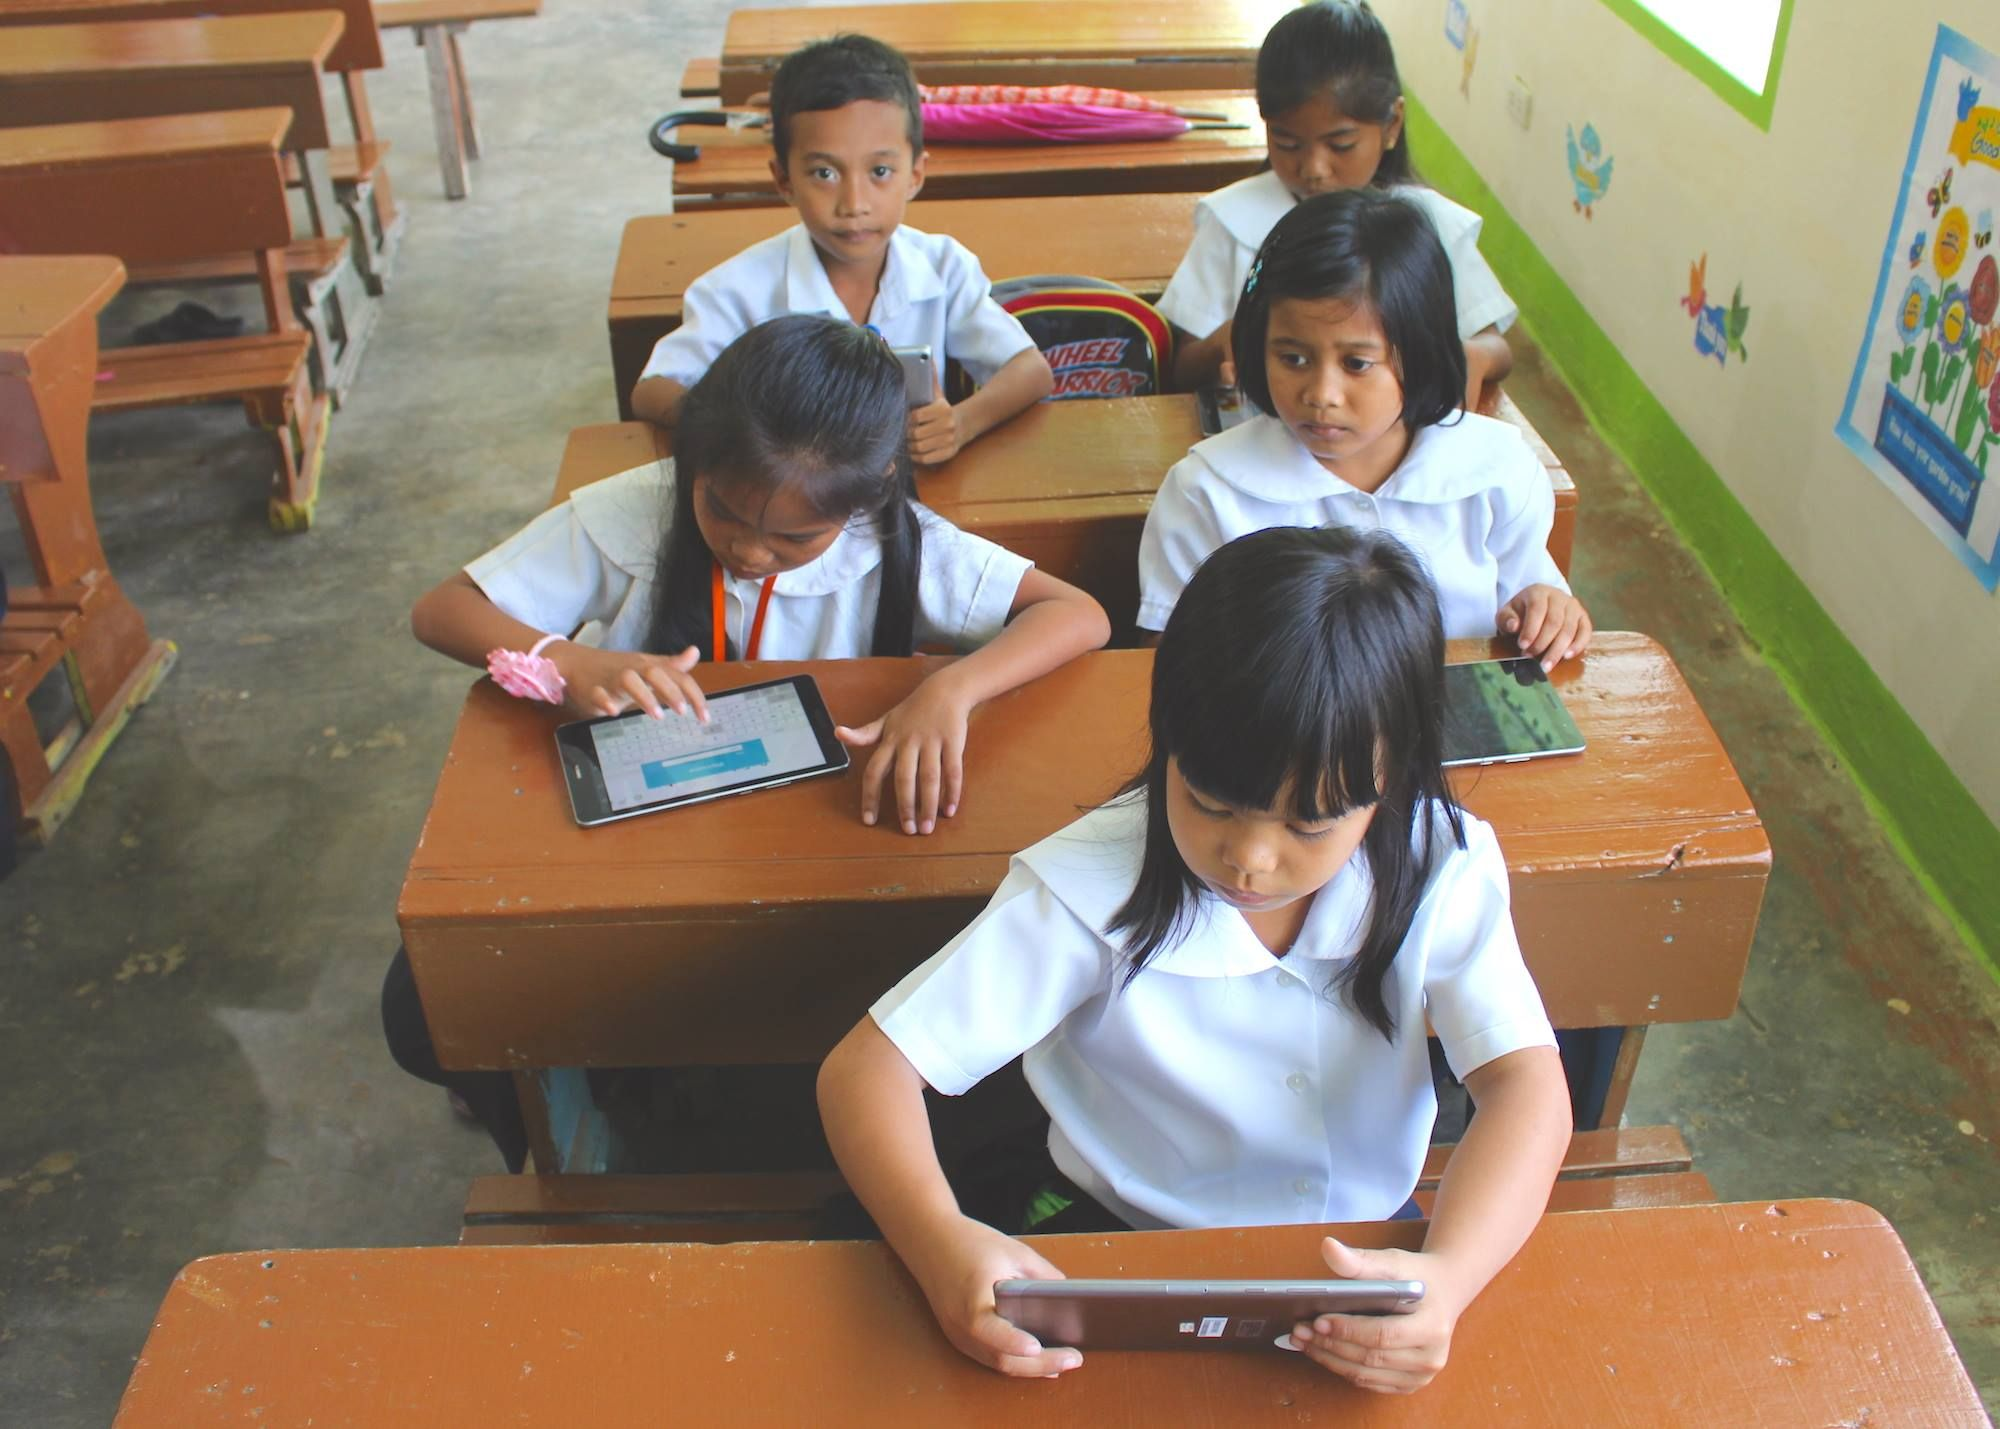 Where To Donate 2021: Help Underprivileged Students Get Access To Education In The New Normal